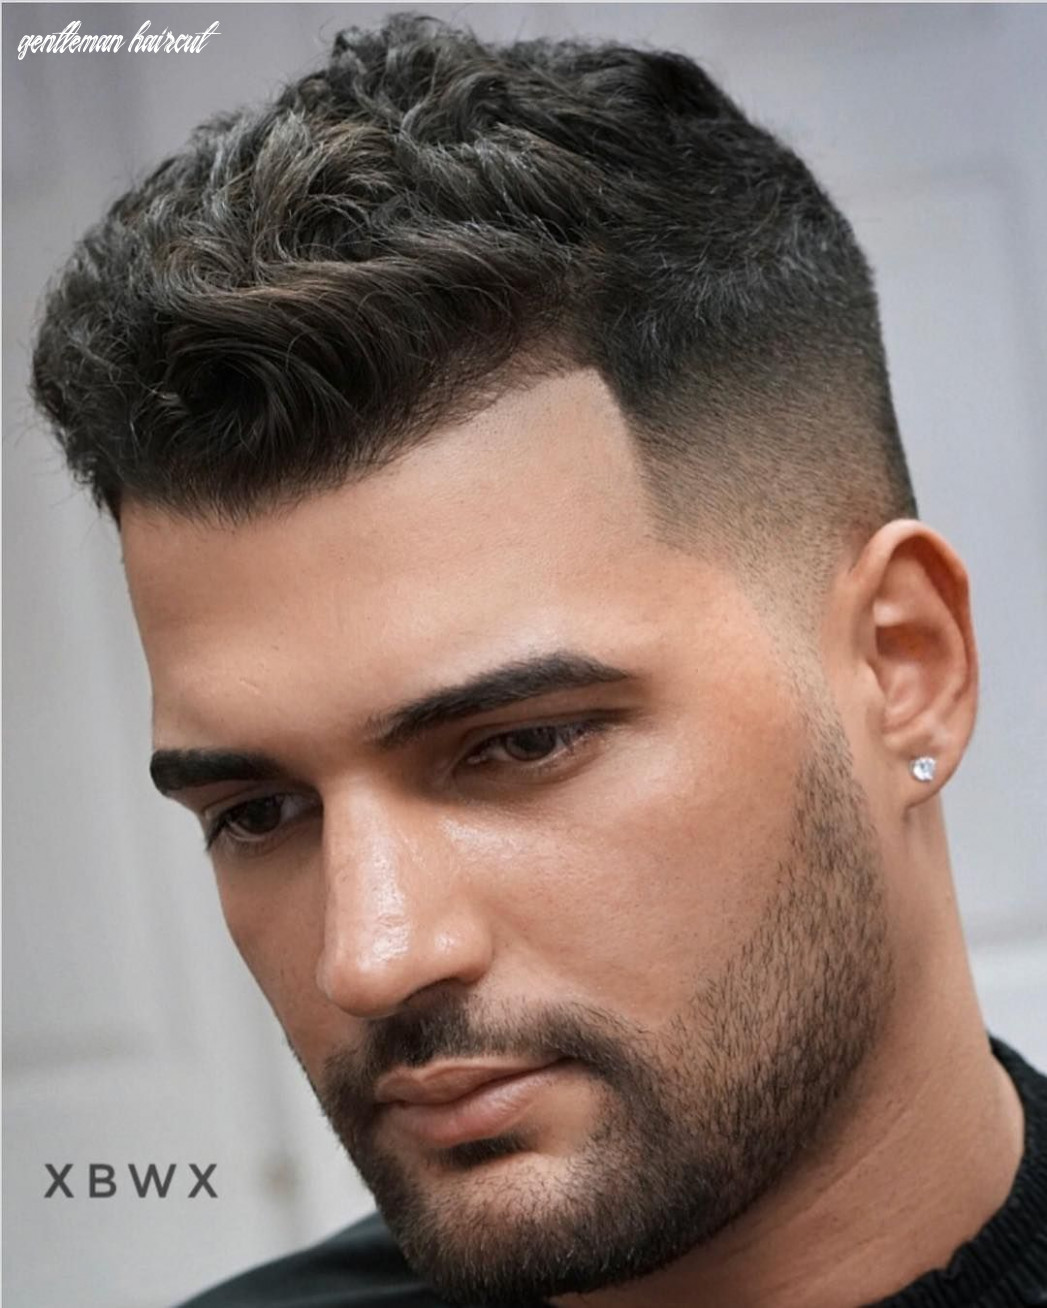 The gentleman haircut | gentleman haircut, square face hairstyles